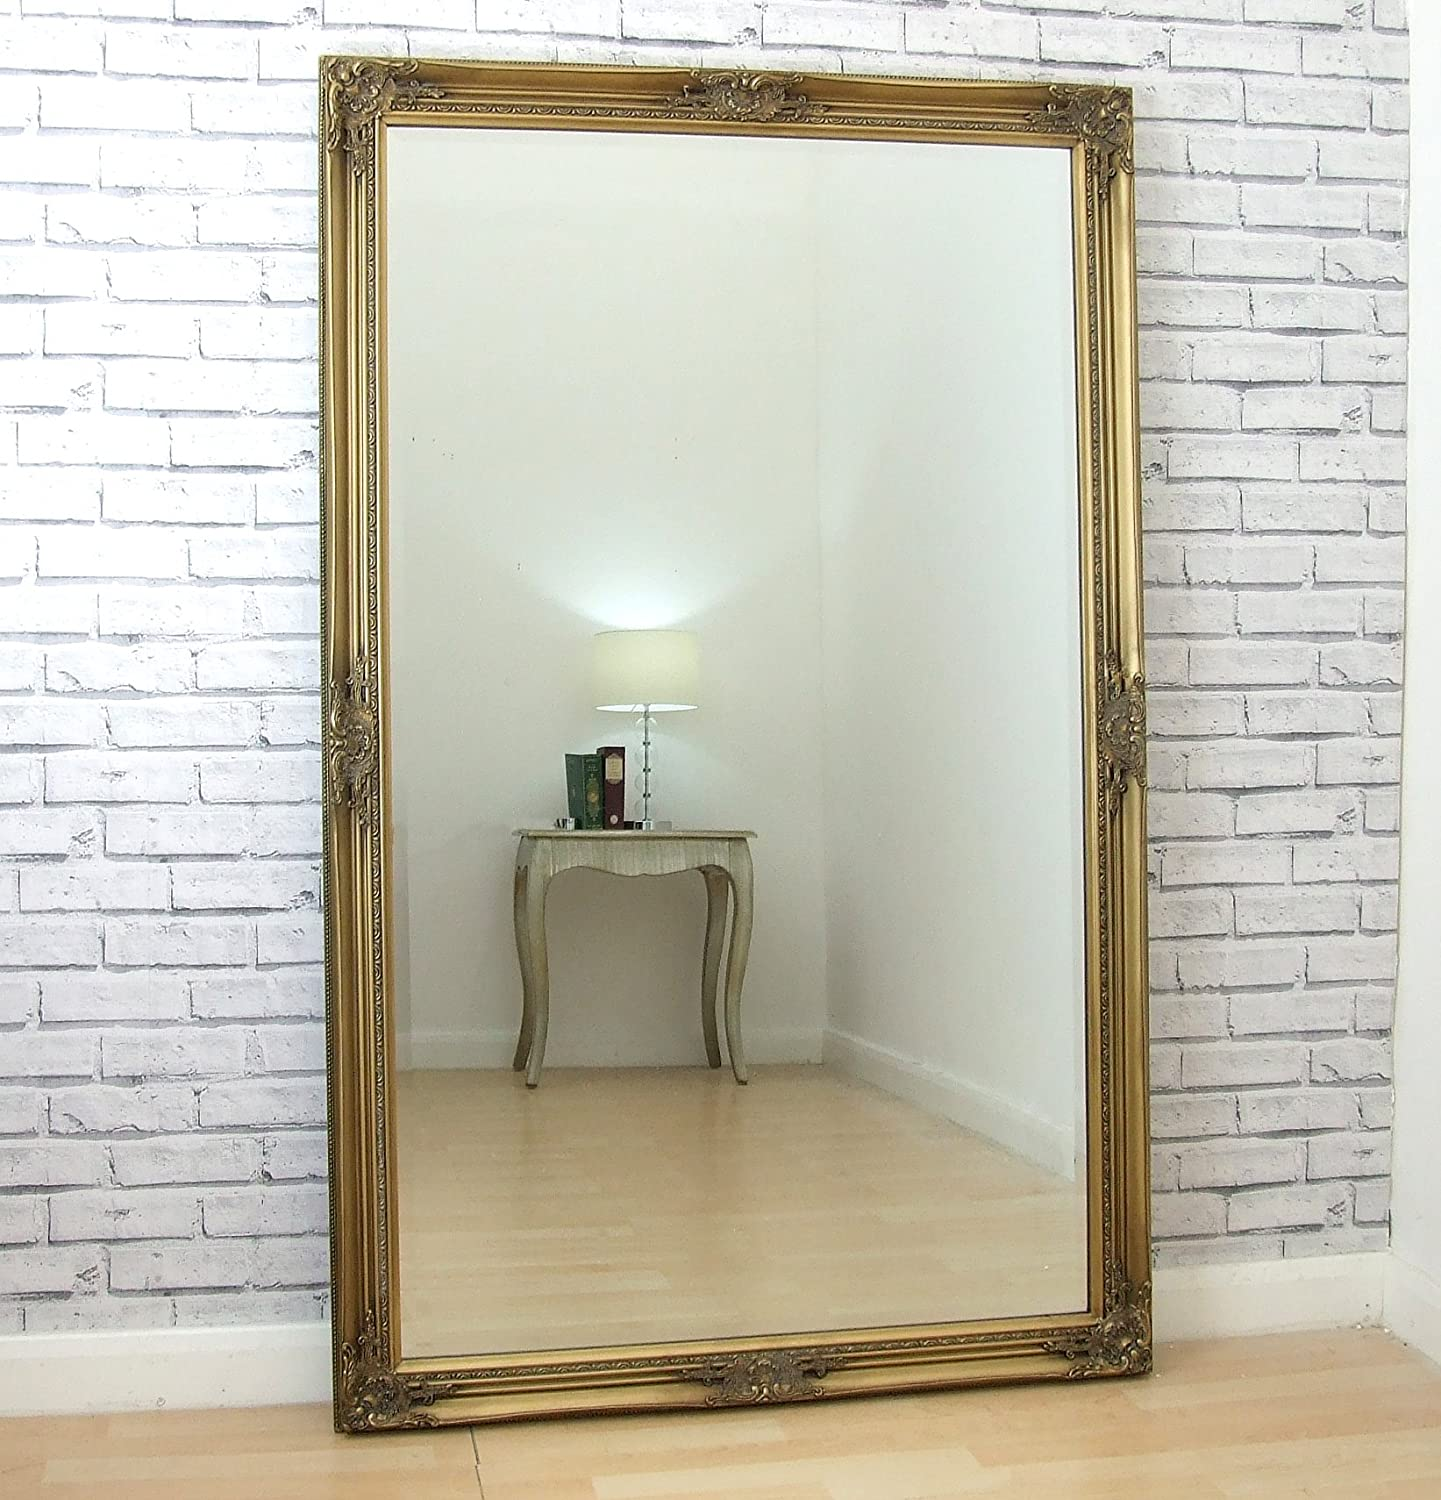 wooden vintage carved truly gold mirrors features a oak on dusxfurnishings mirror white softly border pin cushion leaves reflecting best gilt style painted stylish images floors luxuriant standing floor